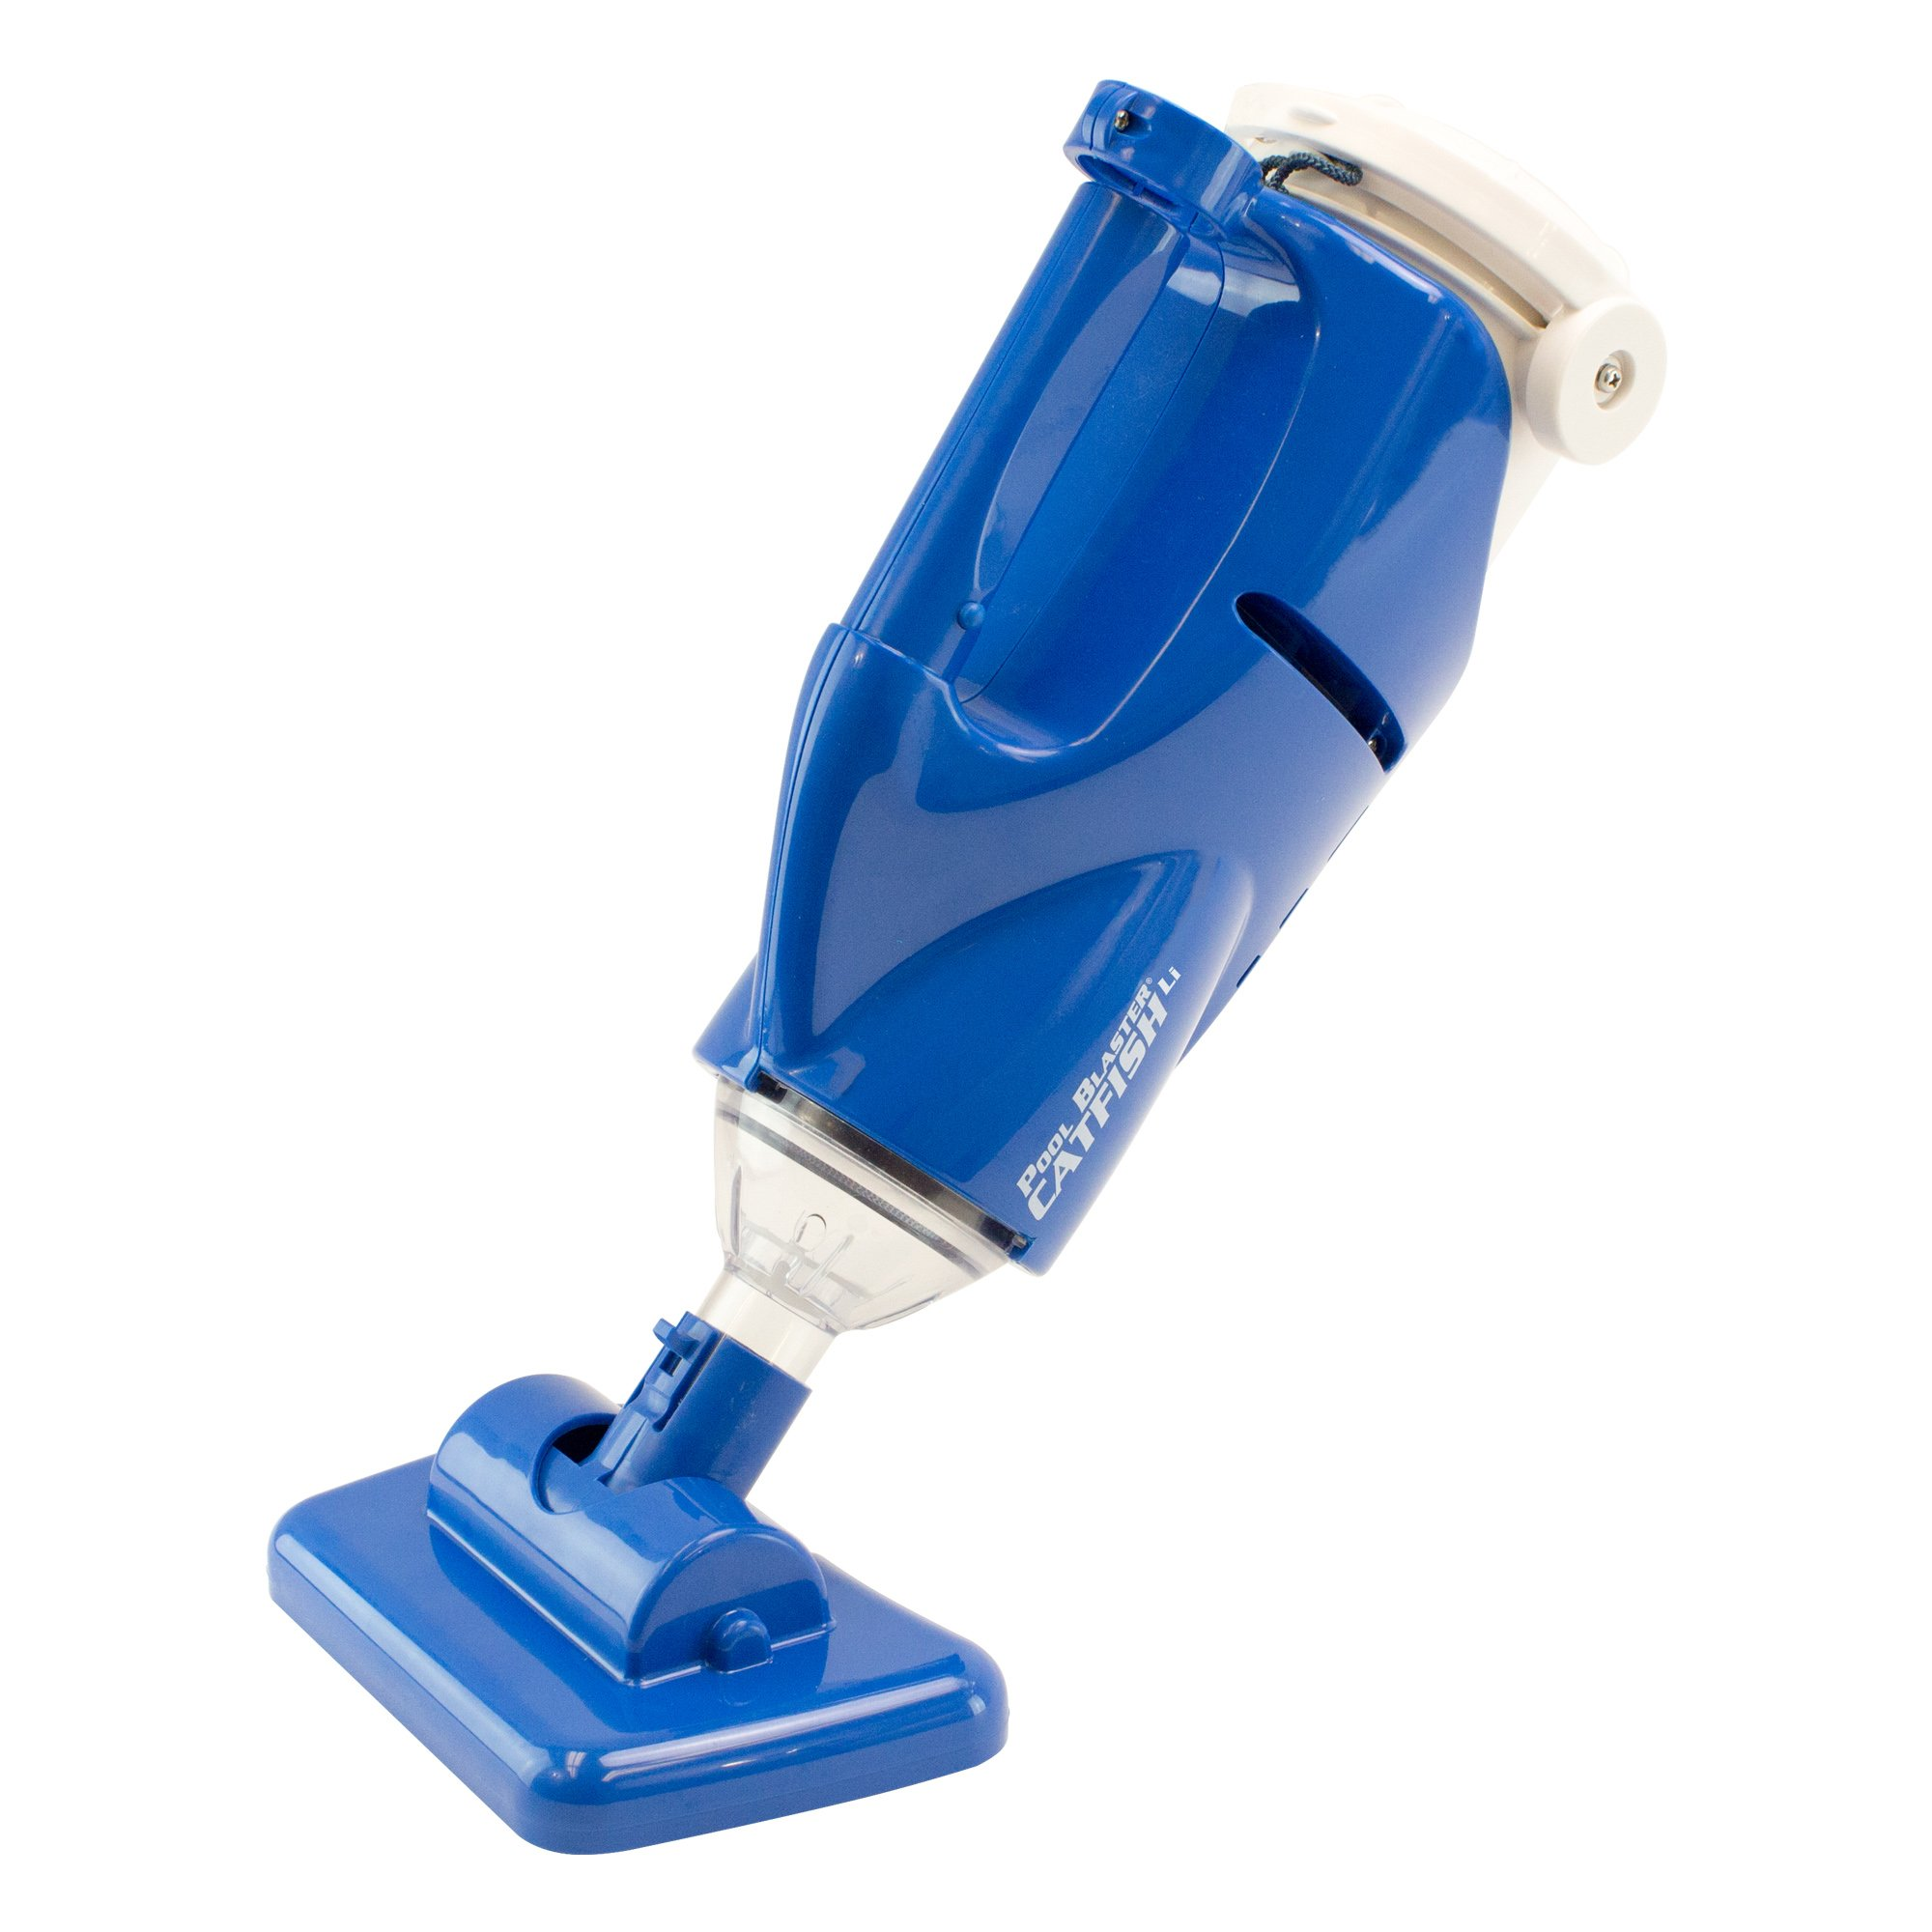 POOL BLASTER Water Tech Catfish Rechargeable, Battery-Powered, Swimming Pool Cleaner, Ideal for Hot Tub and Spa Cleaning, In-Ground and Above Ground Pool Steps Cleans Dirt, Sand & Silt and Leaves